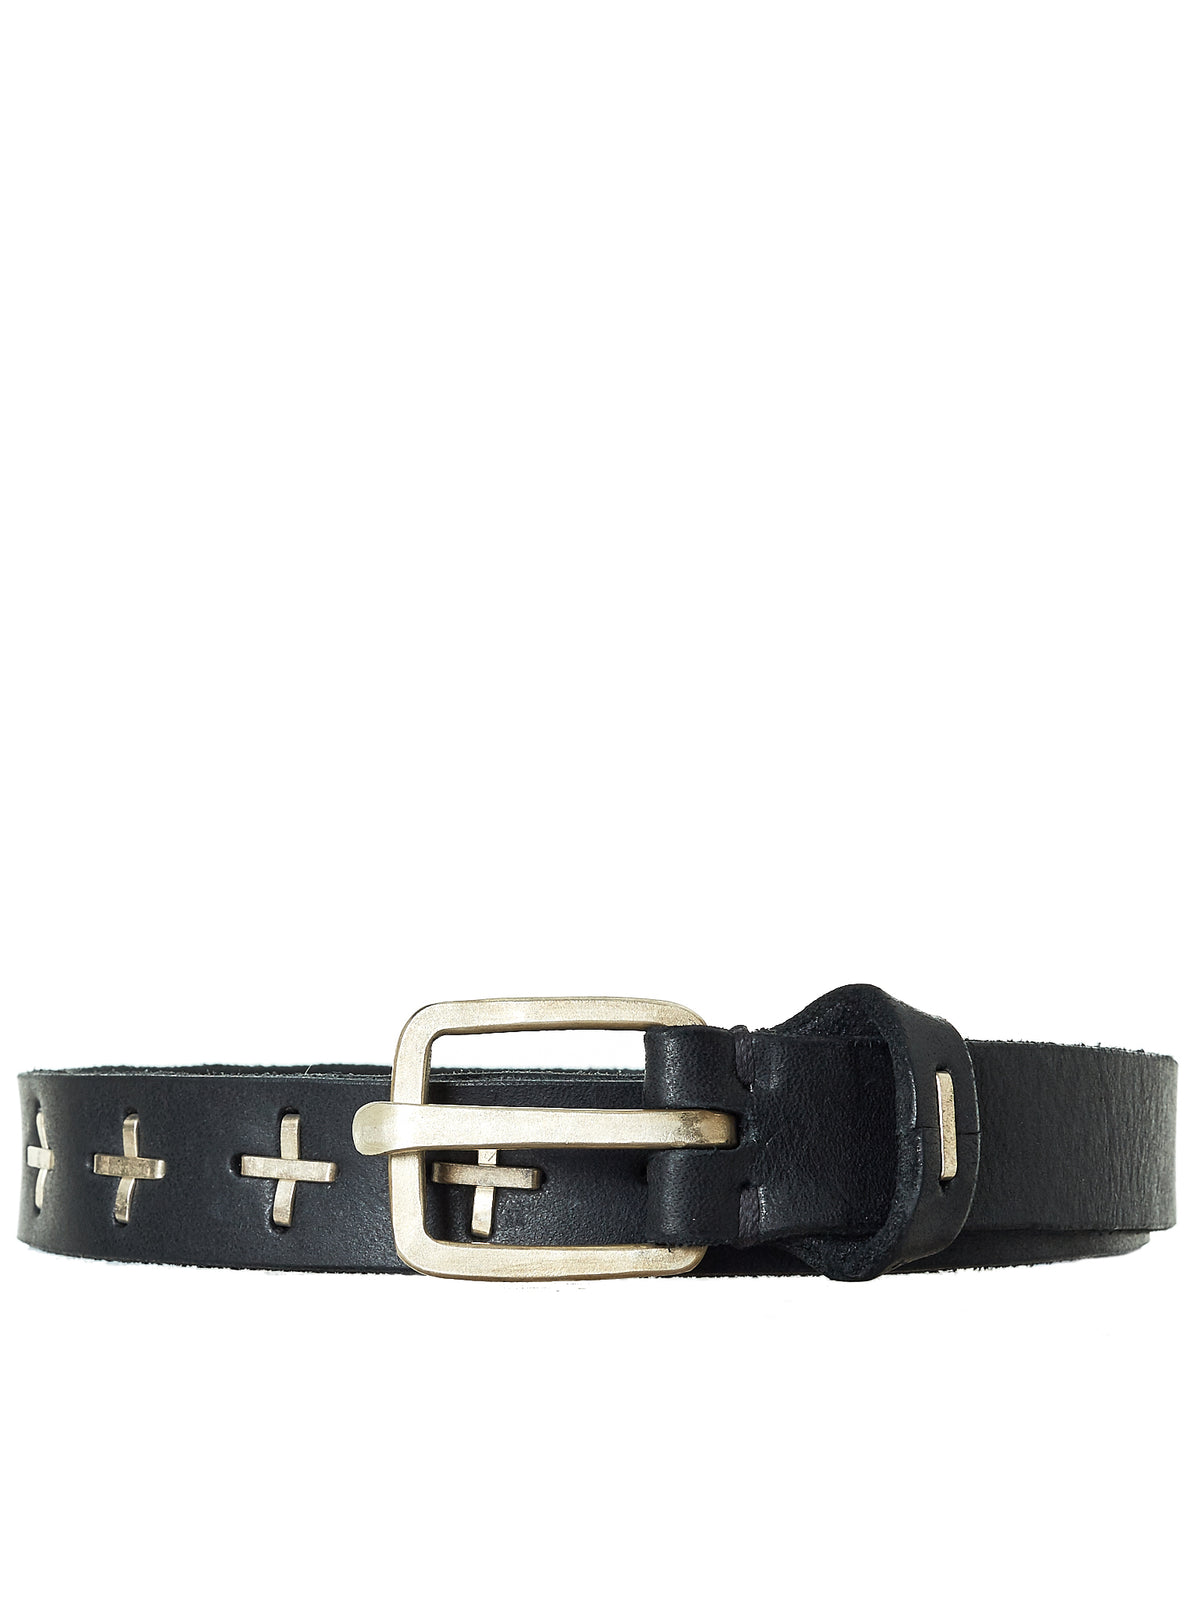 Leather Belt (EQ2C-GR-3-0-BLACK)